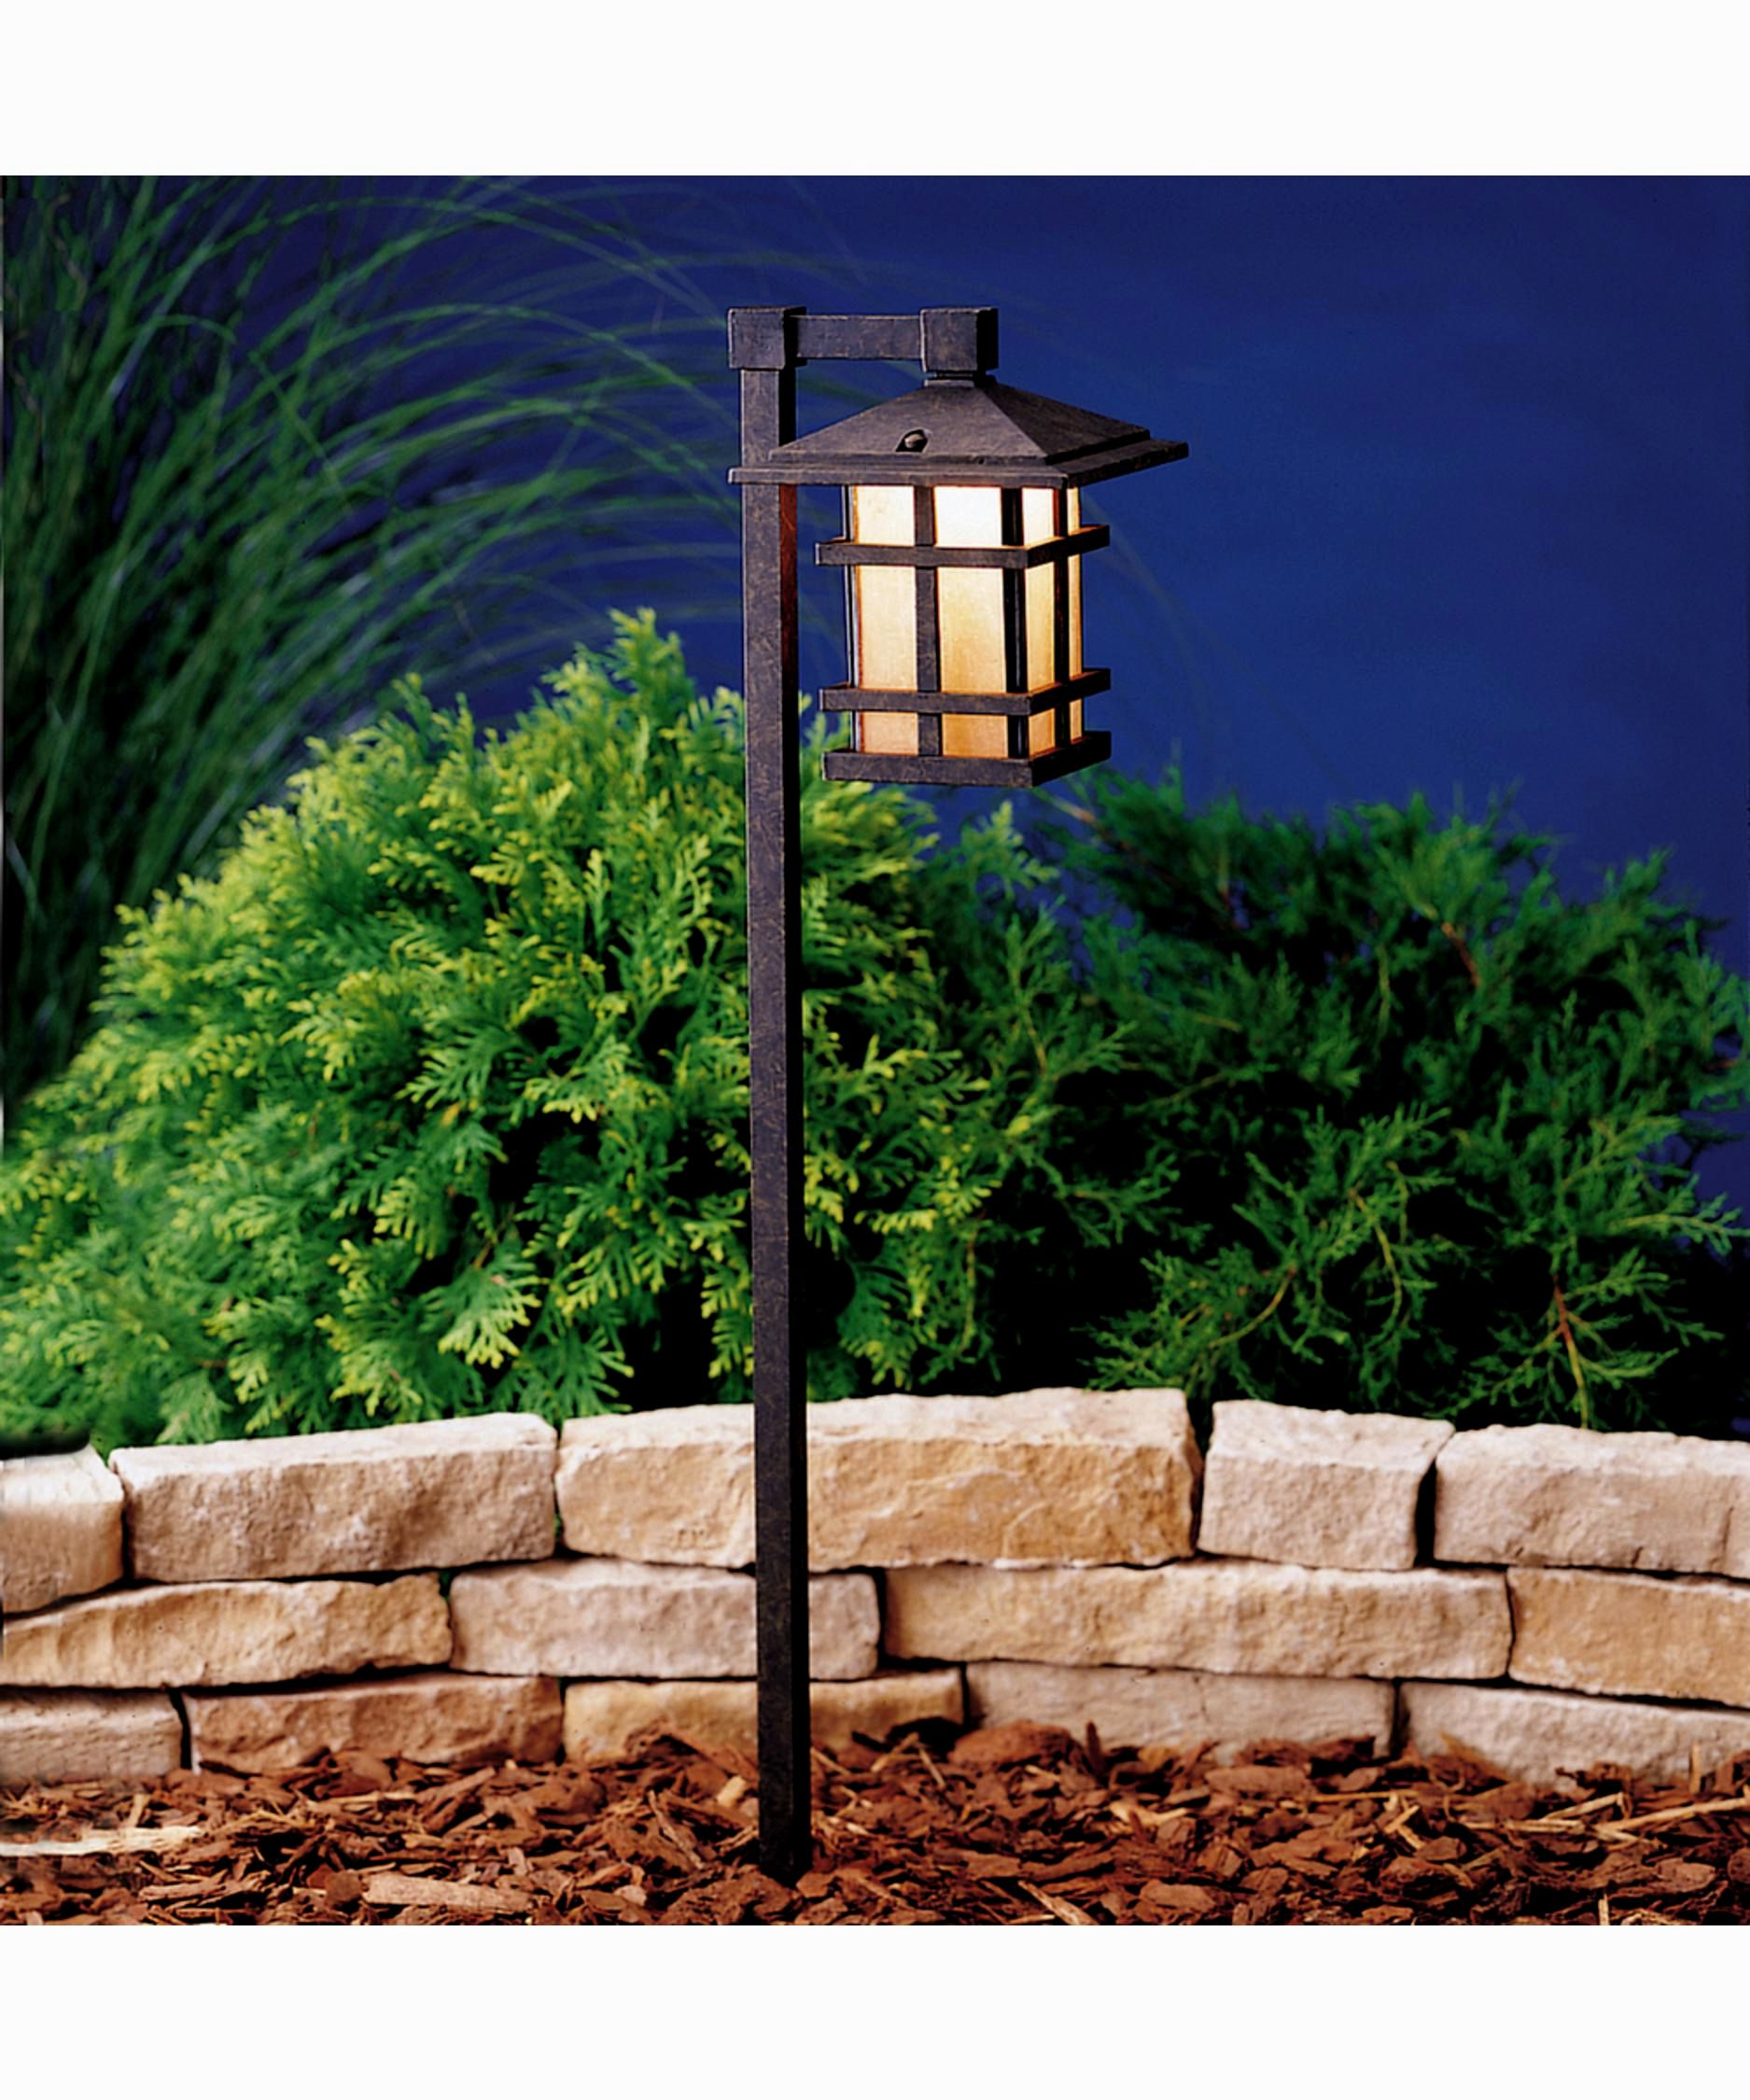 Best ideas about Landscape Lighting Transformer . Save or Pin Landscape Lighting Transformer – Newest Home Lansdscaping Now.